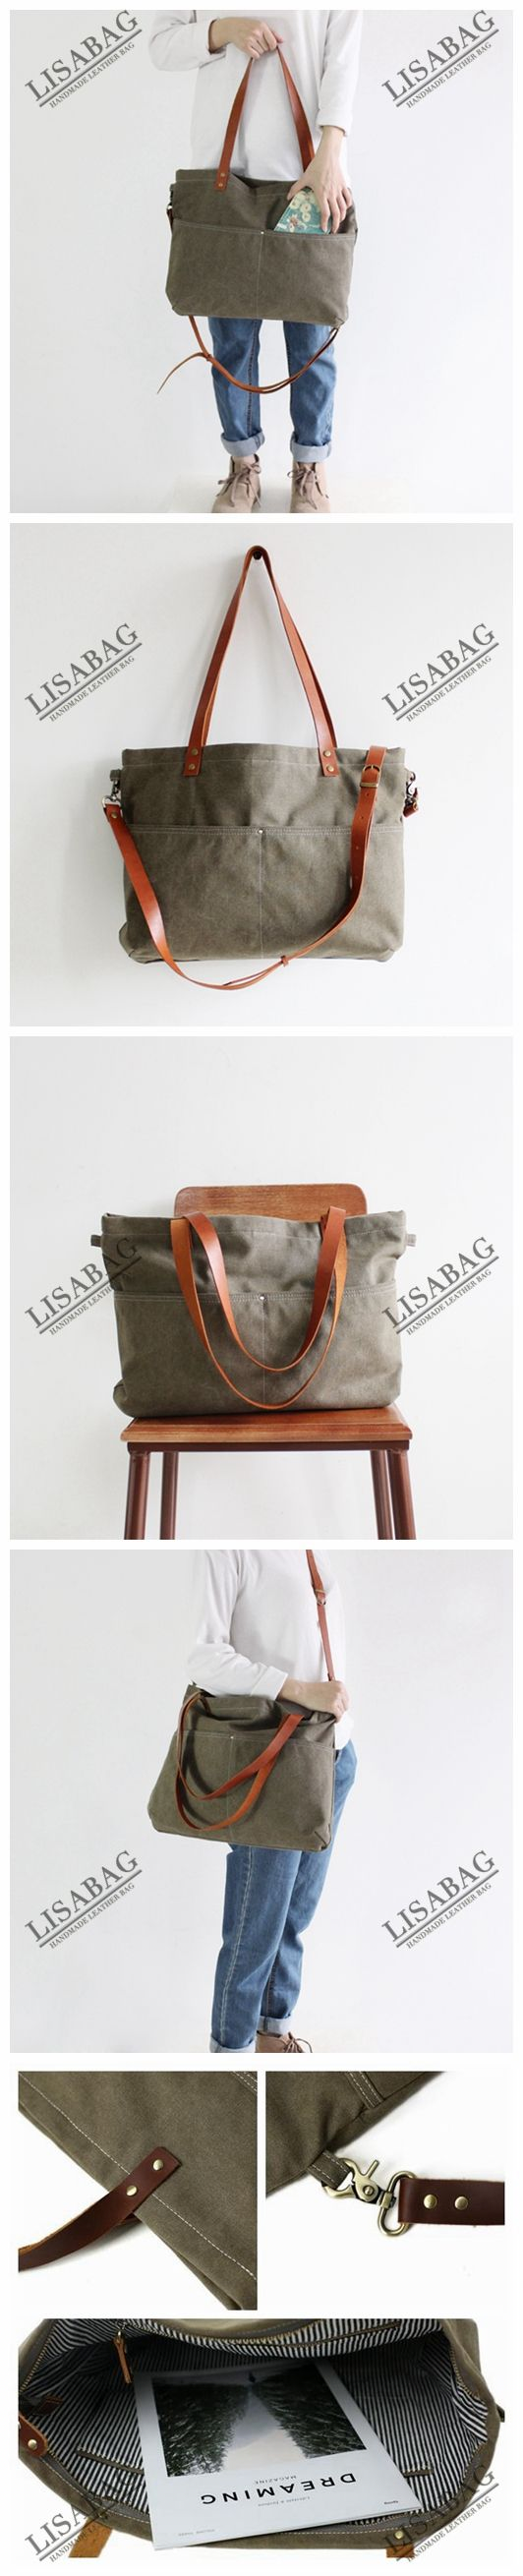 Handmade Canvas Tote Bag Messenger Bag Shopper Bag School Bag Handbag 14022--LISABAG